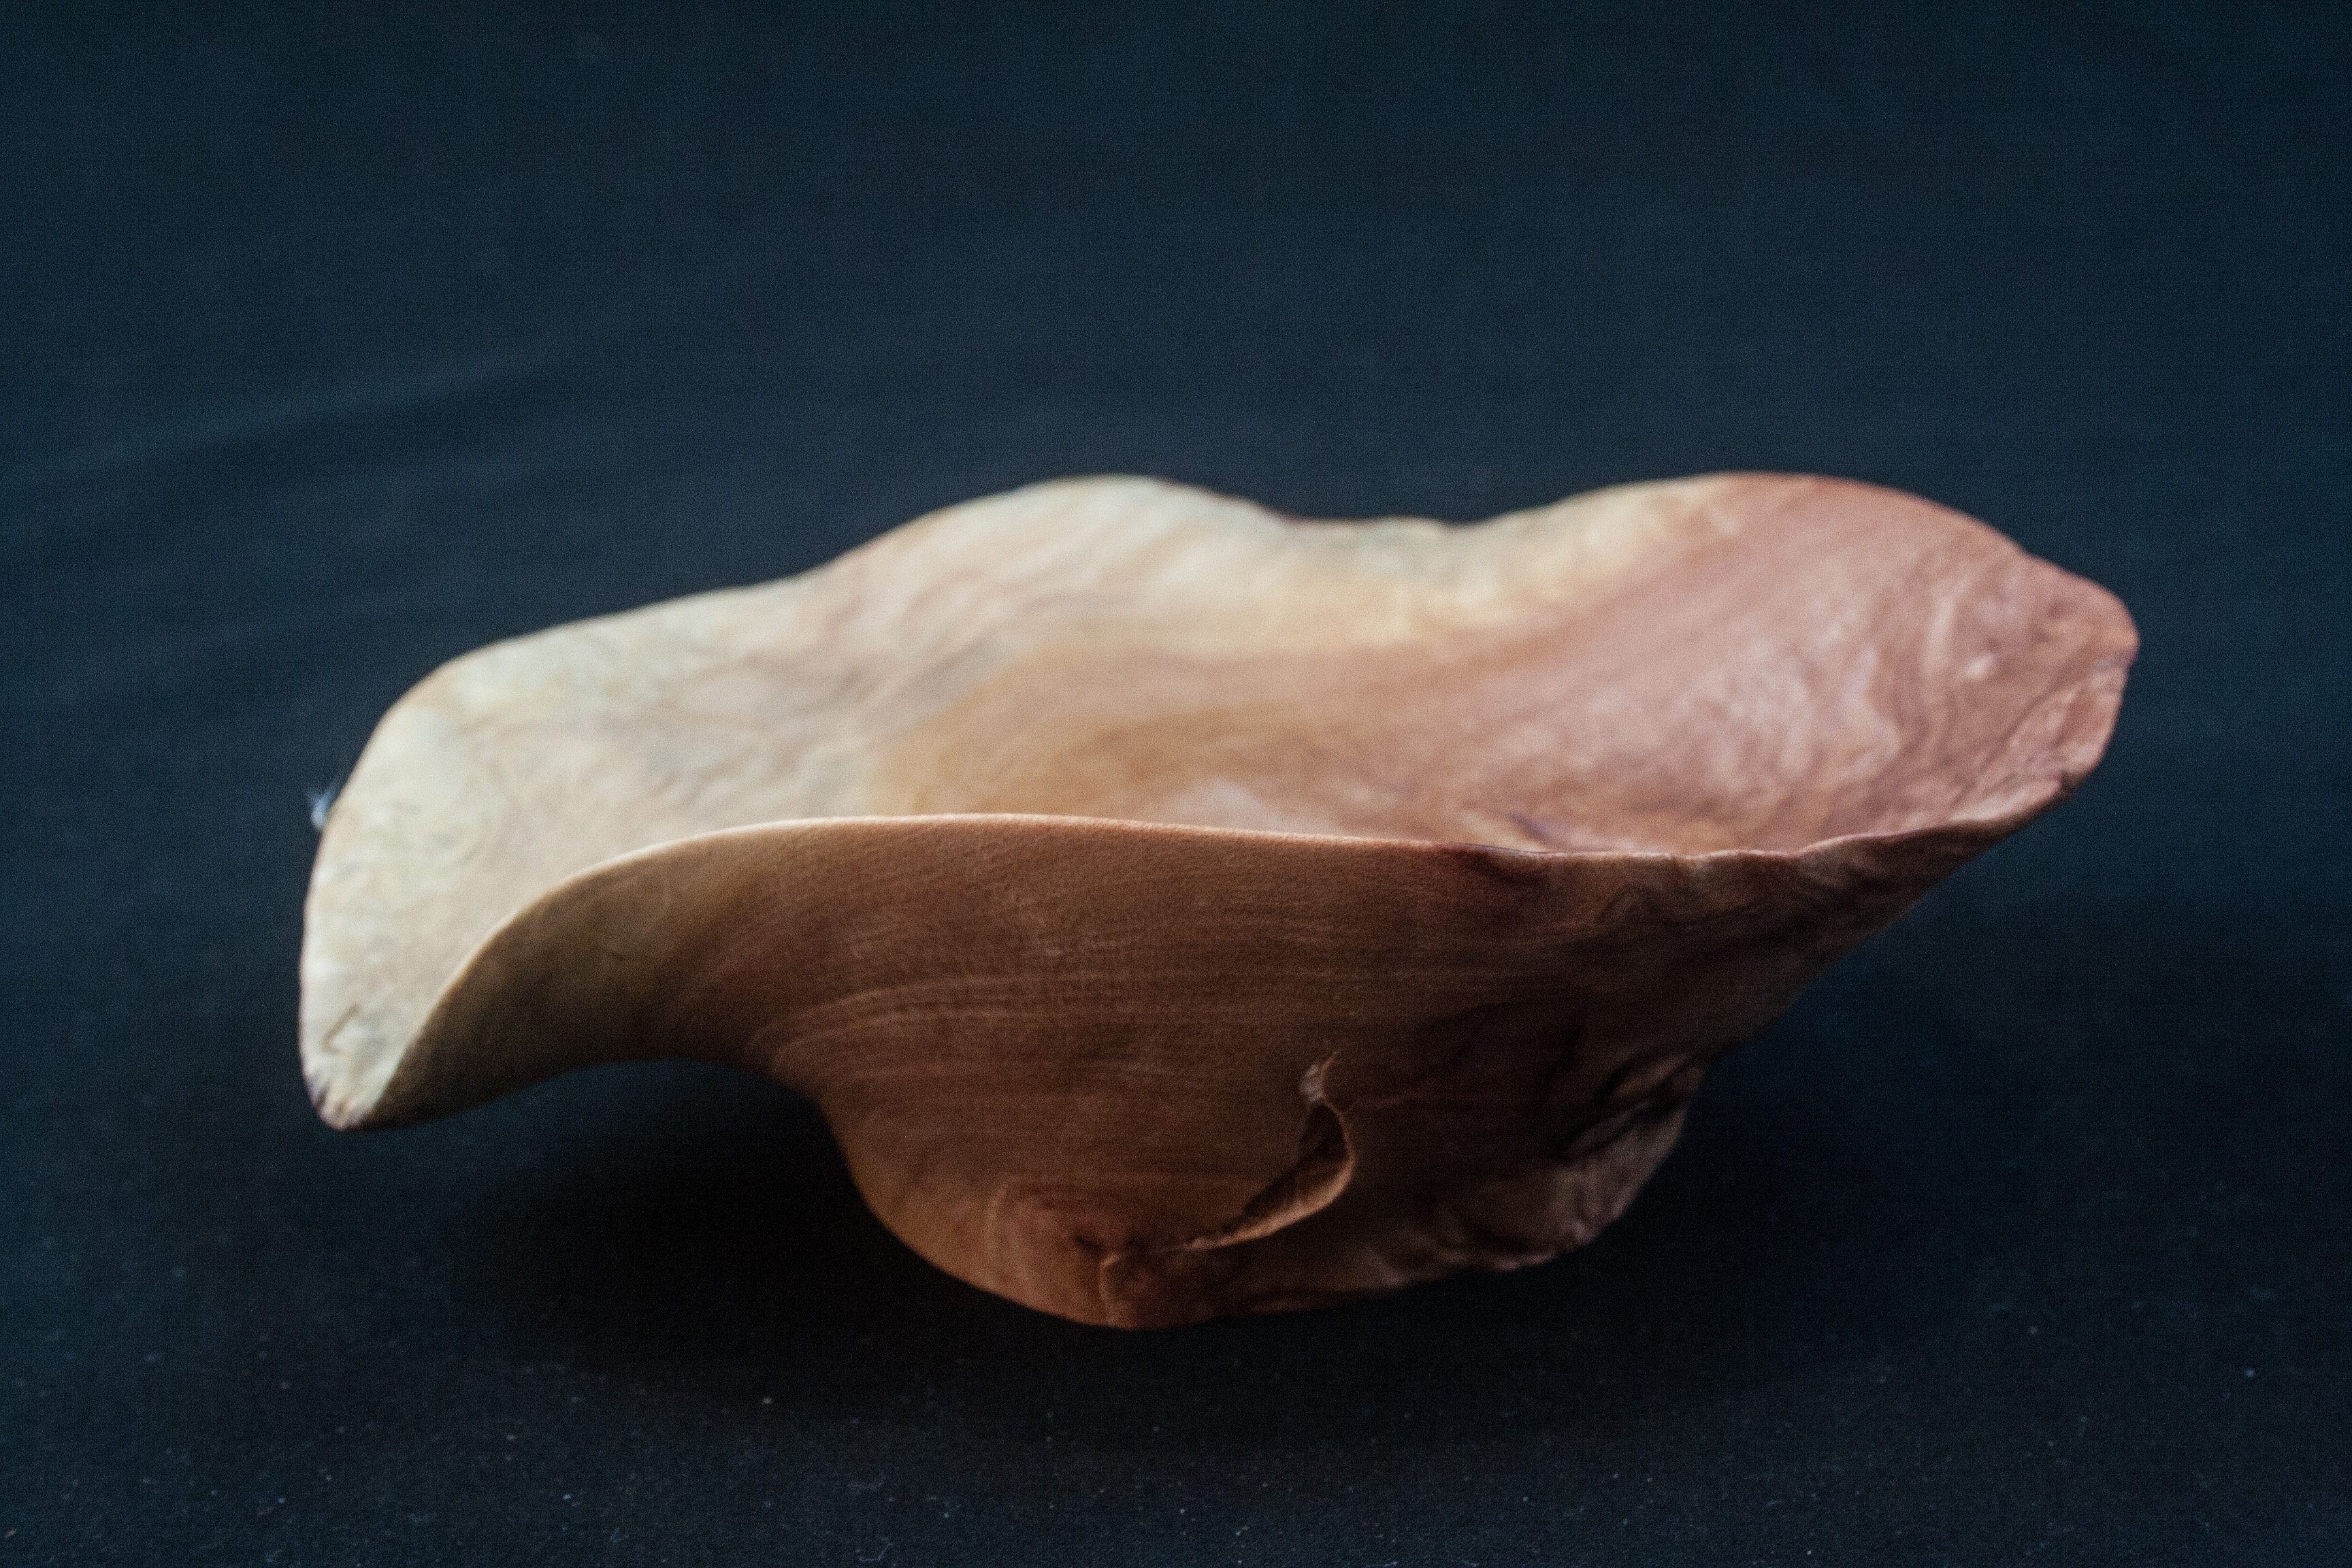 124 Madrone Burl Distorted 2 x 6.5 ...... $29......SOLD